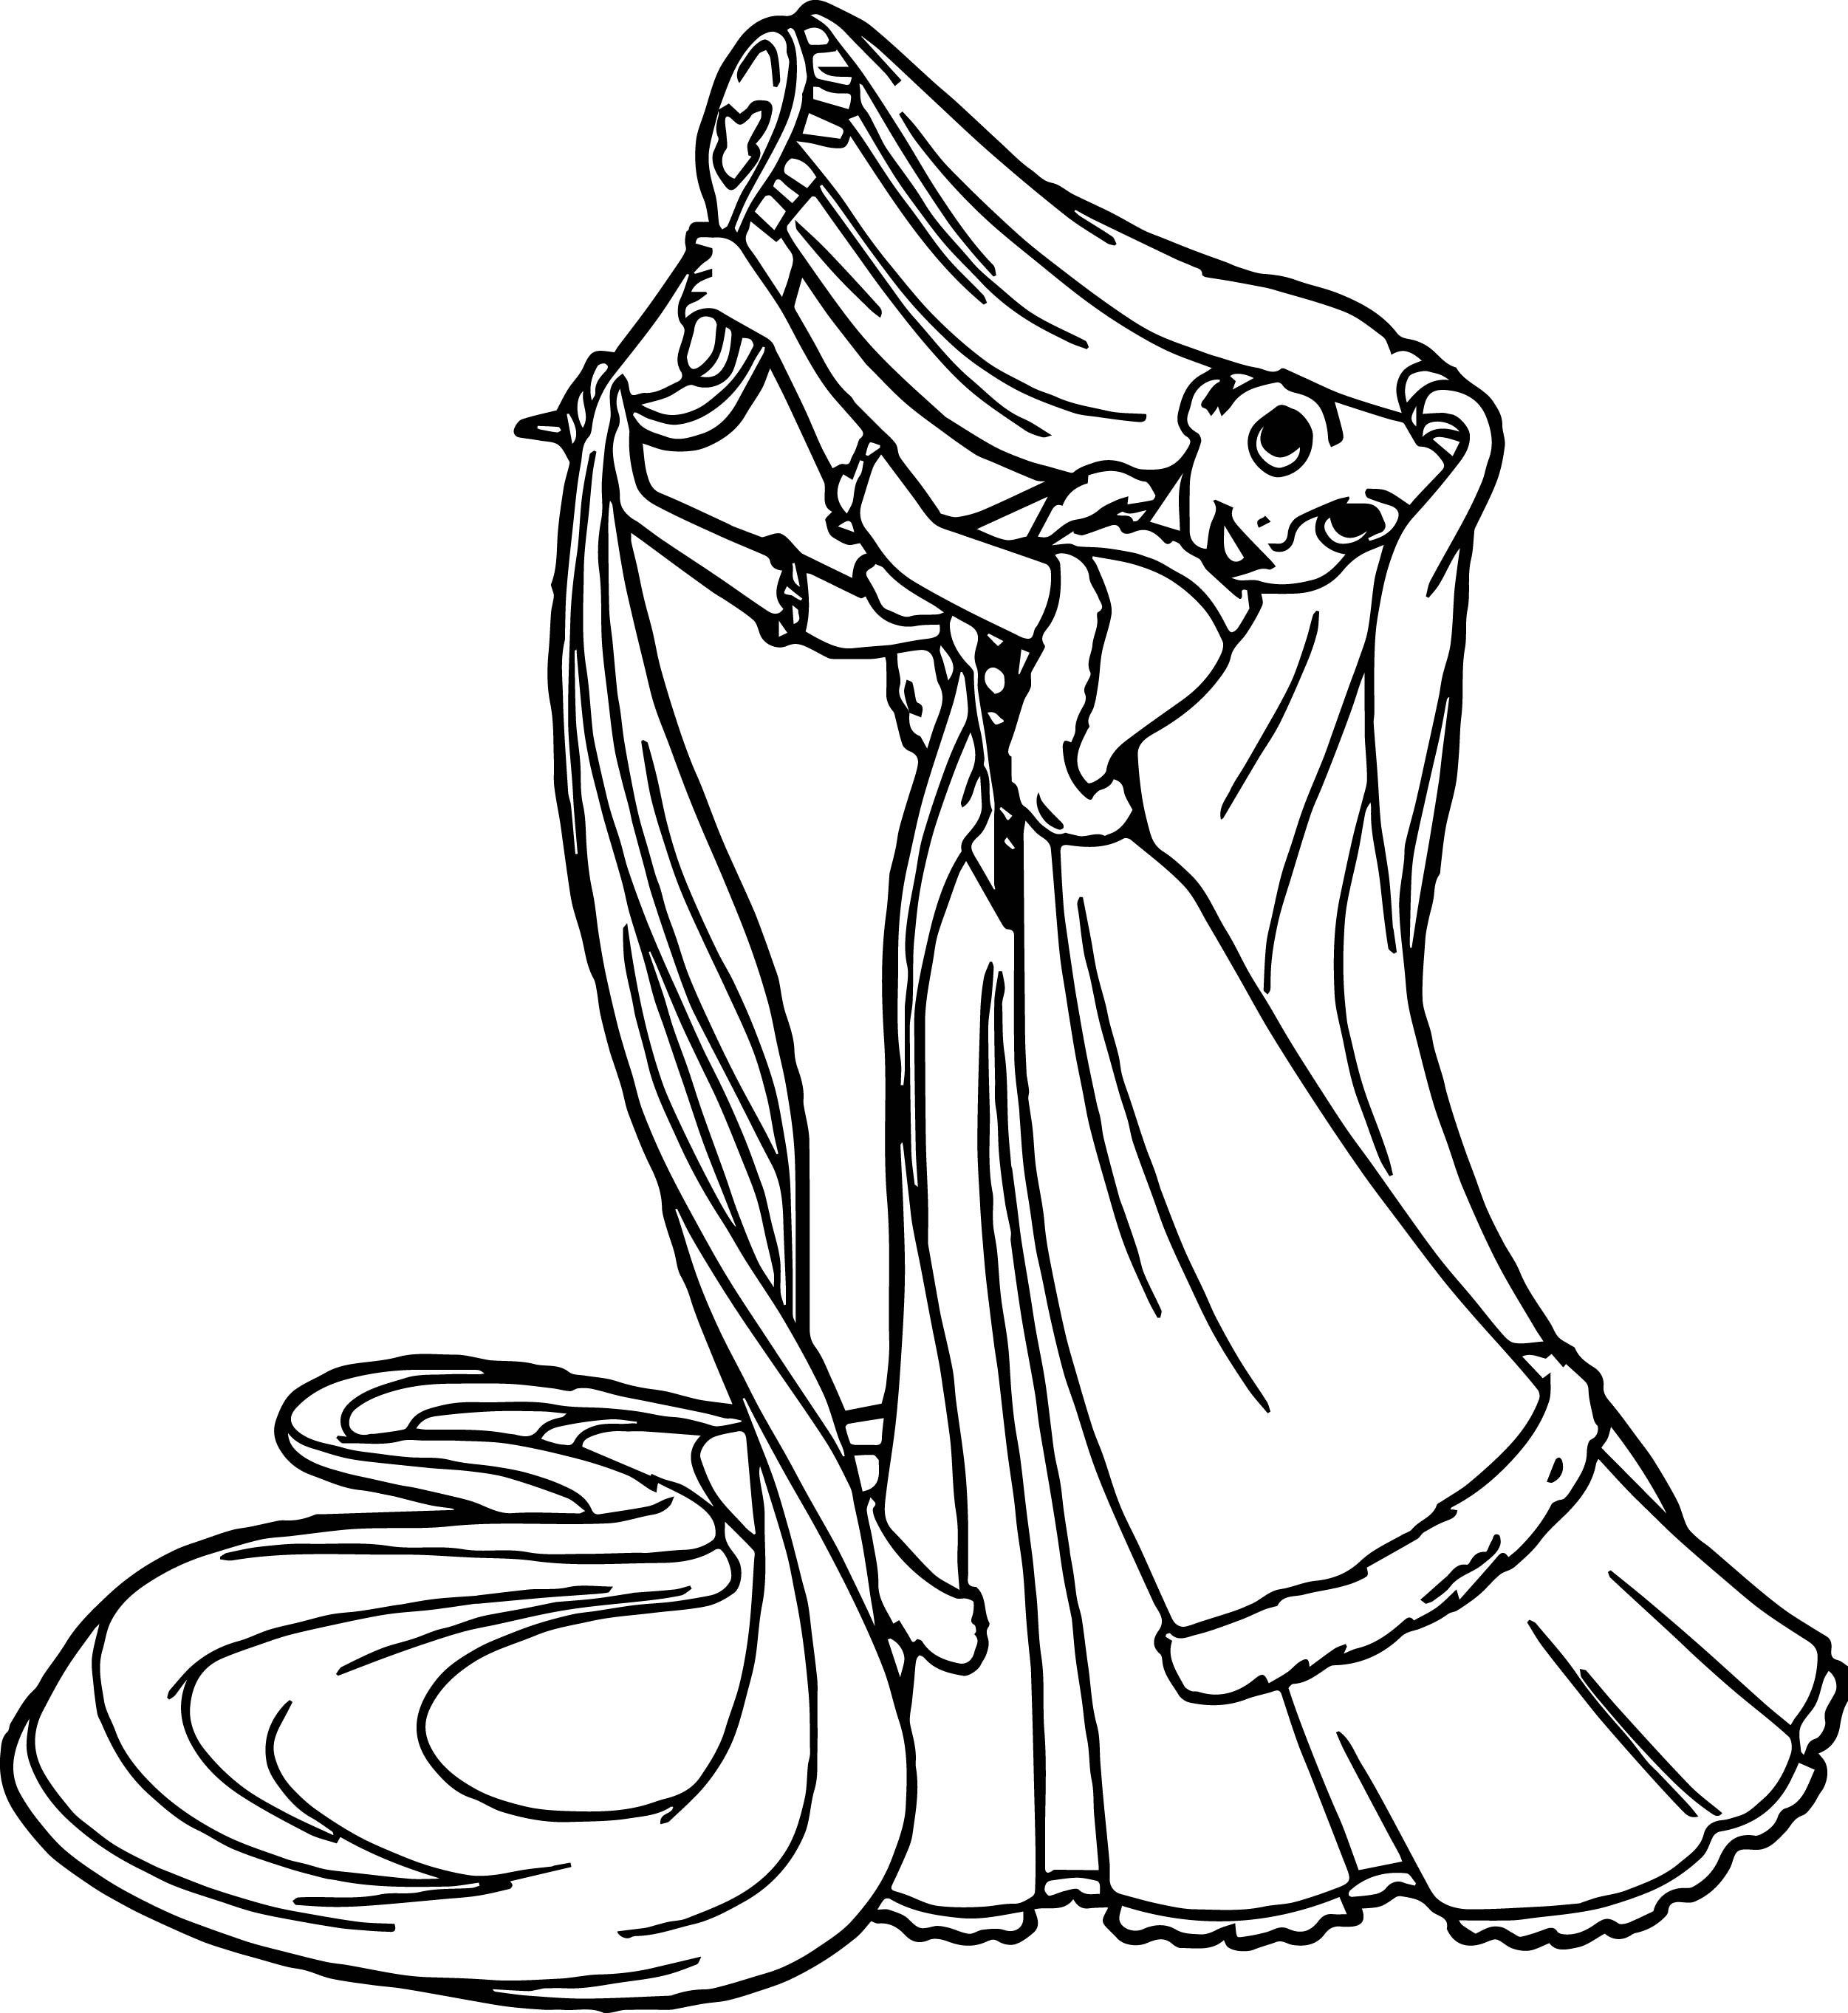 hair colouring pages 121 best images about coloring pages on pinterest hair pages colouring